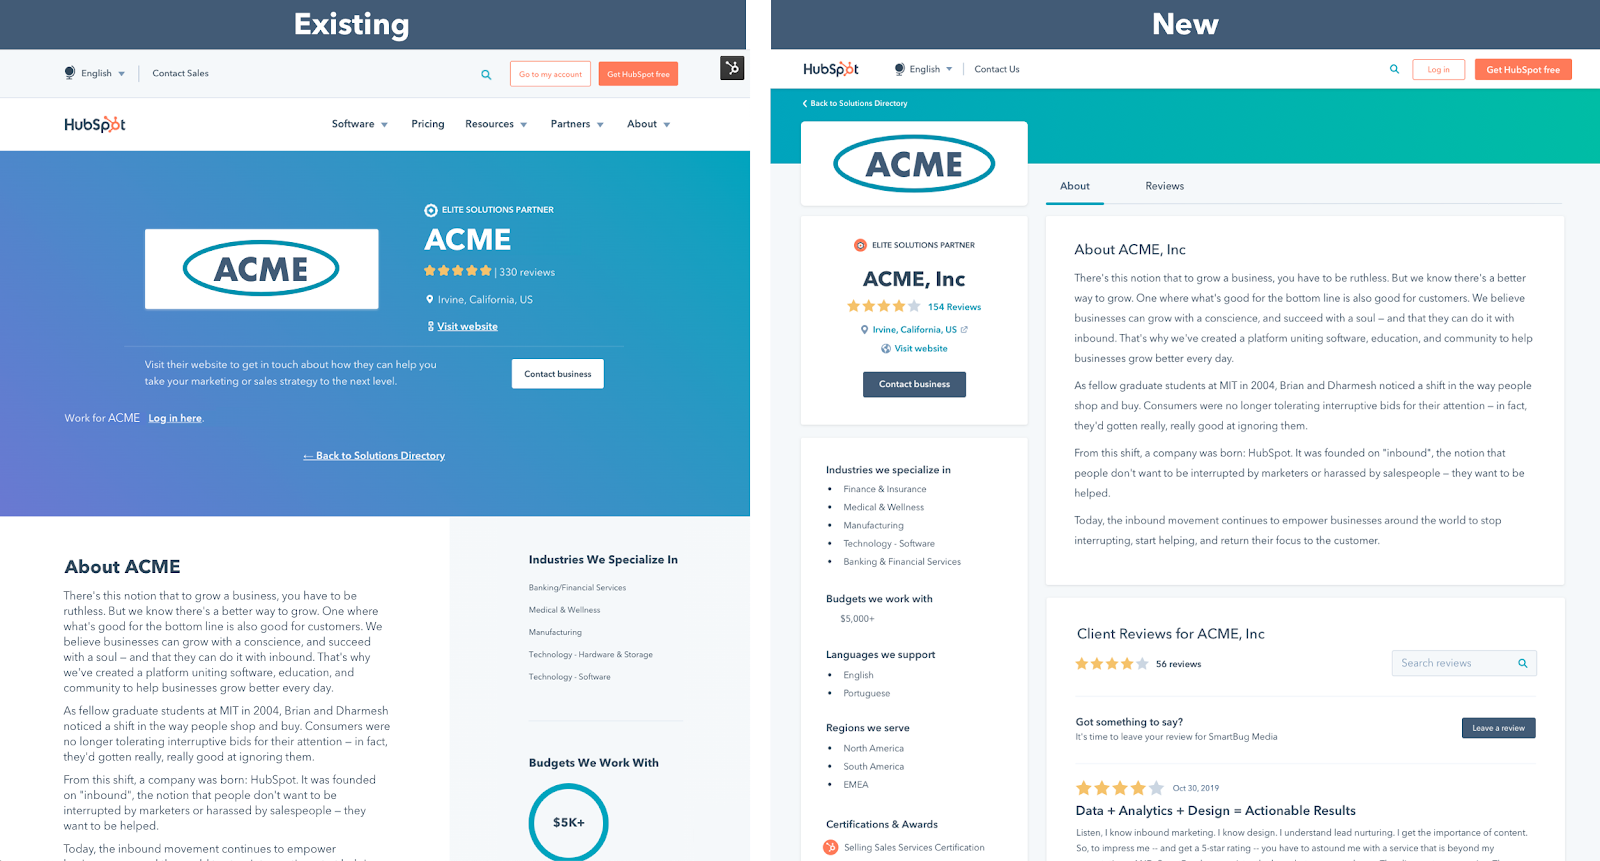 Side by side comparison of the newly designed profile pages.